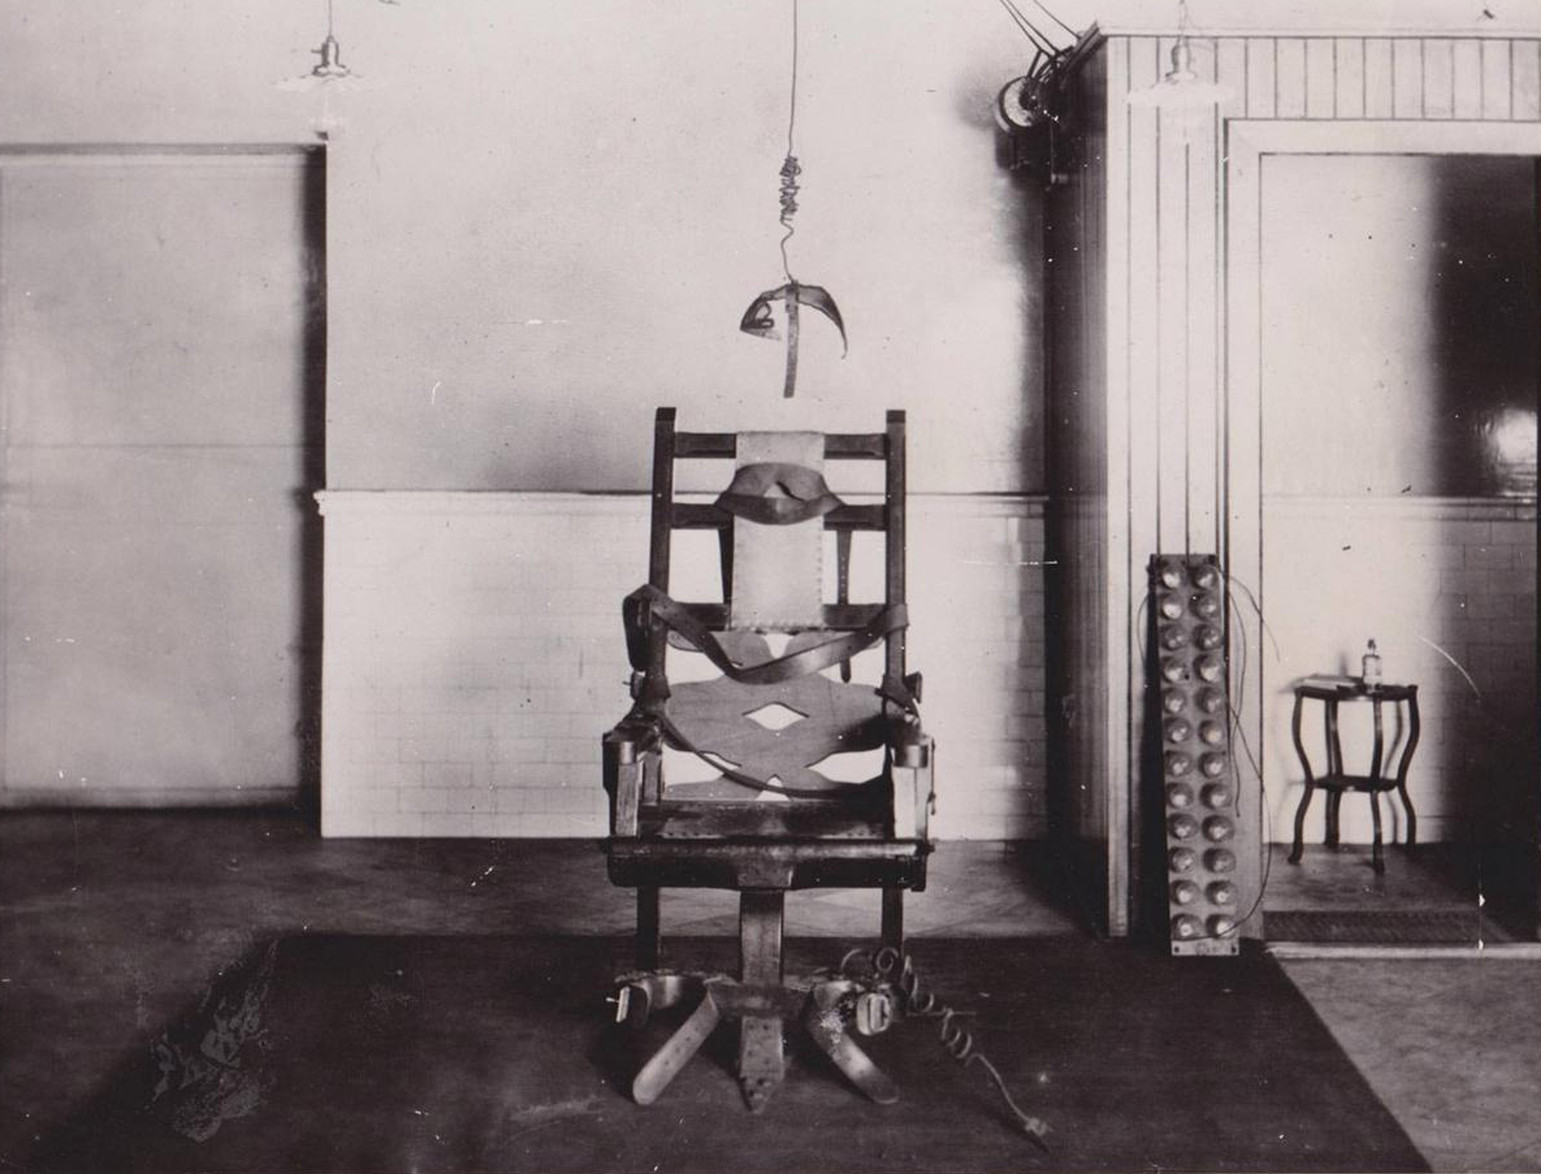 Despite the inherent drama Houdini never performed an electric chair challenge escape as far as I know. His only encounter with an electric chair came in ... & WILD ABOUT HARRY: Houdini and his electric chair